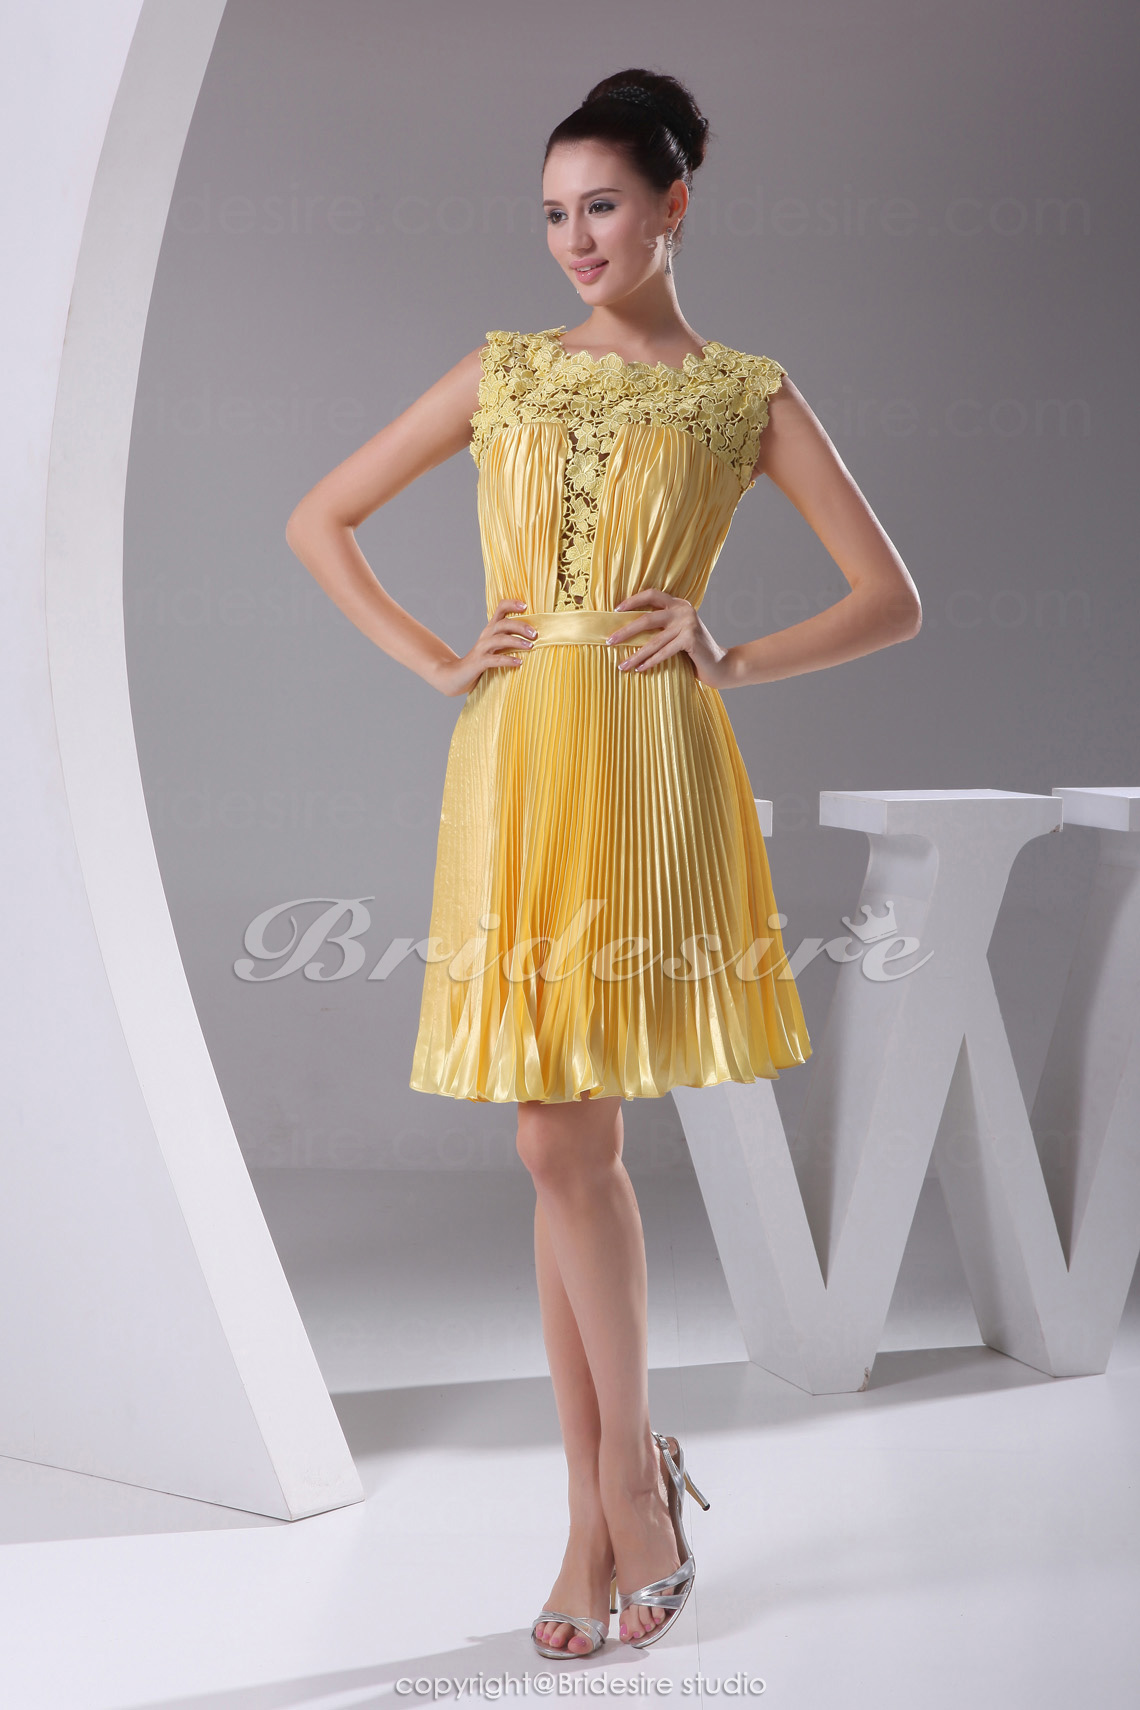 Sheath/Column Scoop Short/Mini Sleeveless Lace Stretch Satin Dress